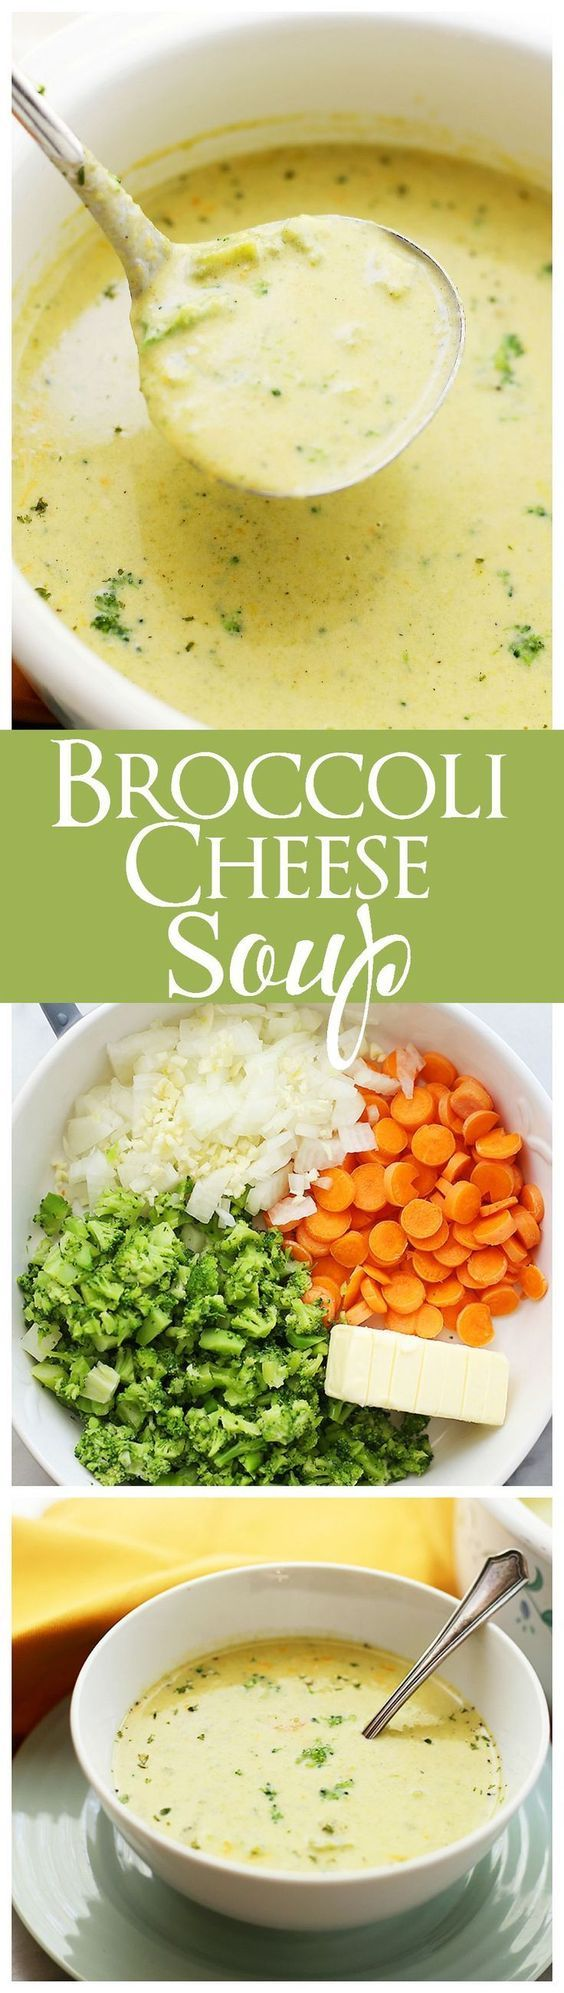 Broccoli Cheese Soup (Panera Copycat)   http://www.diethood.com   If you love Panera Bread's Broccoli Cheese Soup, you are going to be amazed with this copycat recipe!